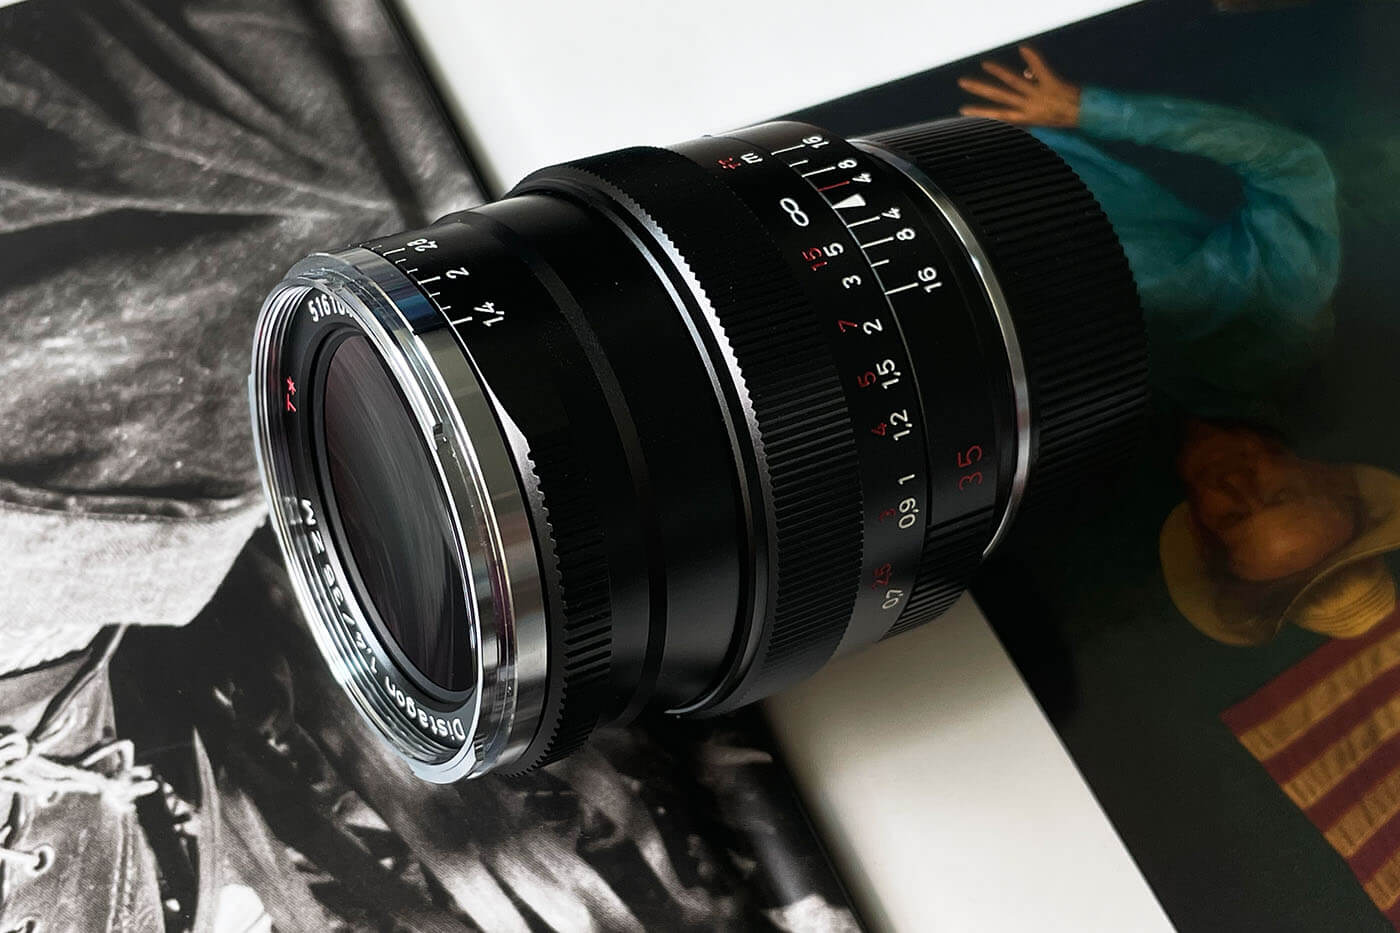 Lens-review-zeiss-distagon-35mm-f1.4-35-1.4-zm-m-mount-leica-wide-angle-street-character-optics-optical-barrel-construct-build-quality